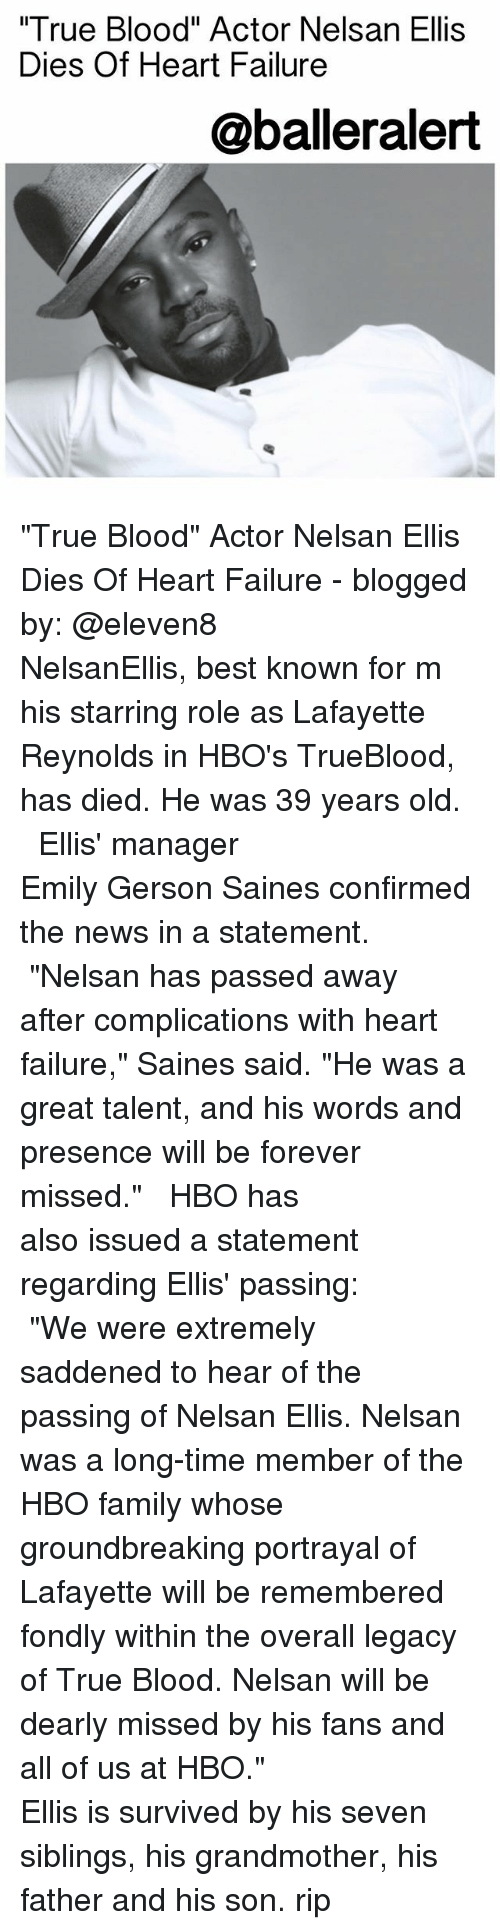 """trueblood: True Blood"""" Actor Nelsan Ellis  Dies Of Heart Failure  @balleralert """"True Blood"""" Actor Nelsan Ellis Dies Of Heart Failure - blogged by: @eleven8 ⠀⠀⠀⠀⠀⠀⠀⠀⠀ ⠀⠀⠀⠀⠀⠀⠀⠀⠀ NelsanEllis, best known for m his starring role as Lafayette Reynolds in HBO's TrueBlood, has died. He was 39 years old. ⠀⠀⠀⠀⠀⠀⠀⠀⠀ ⠀⠀⠀⠀⠀⠀⠀⠀⠀ Ellis' manager Emily Gerson Saines confirmed the news in a statement. ⠀⠀⠀⠀⠀⠀⠀⠀⠀ ⠀⠀⠀⠀⠀⠀⠀⠀⠀ """"Nelsan has passed away after complications with heart failure,"""" Saines said. """"He was a great talent, and his words and presence will be forever missed."""" ⠀⠀⠀⠀⠀⠀⠀⠀⠀ ⠀⠀⠀⠀⠀⠀⠀⠀⠀ HBO has also issued a statement regarding Ellis' passing: ⠀⠀⠀⠀⠀⠀⠀⠀⠀ ⠀⠀⠀⠀⠀⠀⠀⠀⠀ """"We were extremely saddened to hear of the passing of Nelsan Ellis. Nelsan was a long-time member of the HBO family whose groundbreaking portrayal of Lafayette will be remembered fondly within the overall legacy of True Blood. Nelsan will be dearly missed by his fans and all of us at HBO."""" ⠀⠀⠀⠀⠀⠀⠀⠀⠀ ⠀⠀⠀⠀⠀⠀⠀⠀⠀ Ellis is survived by his seven siblings, his grandmother, his father and his son. rip"""